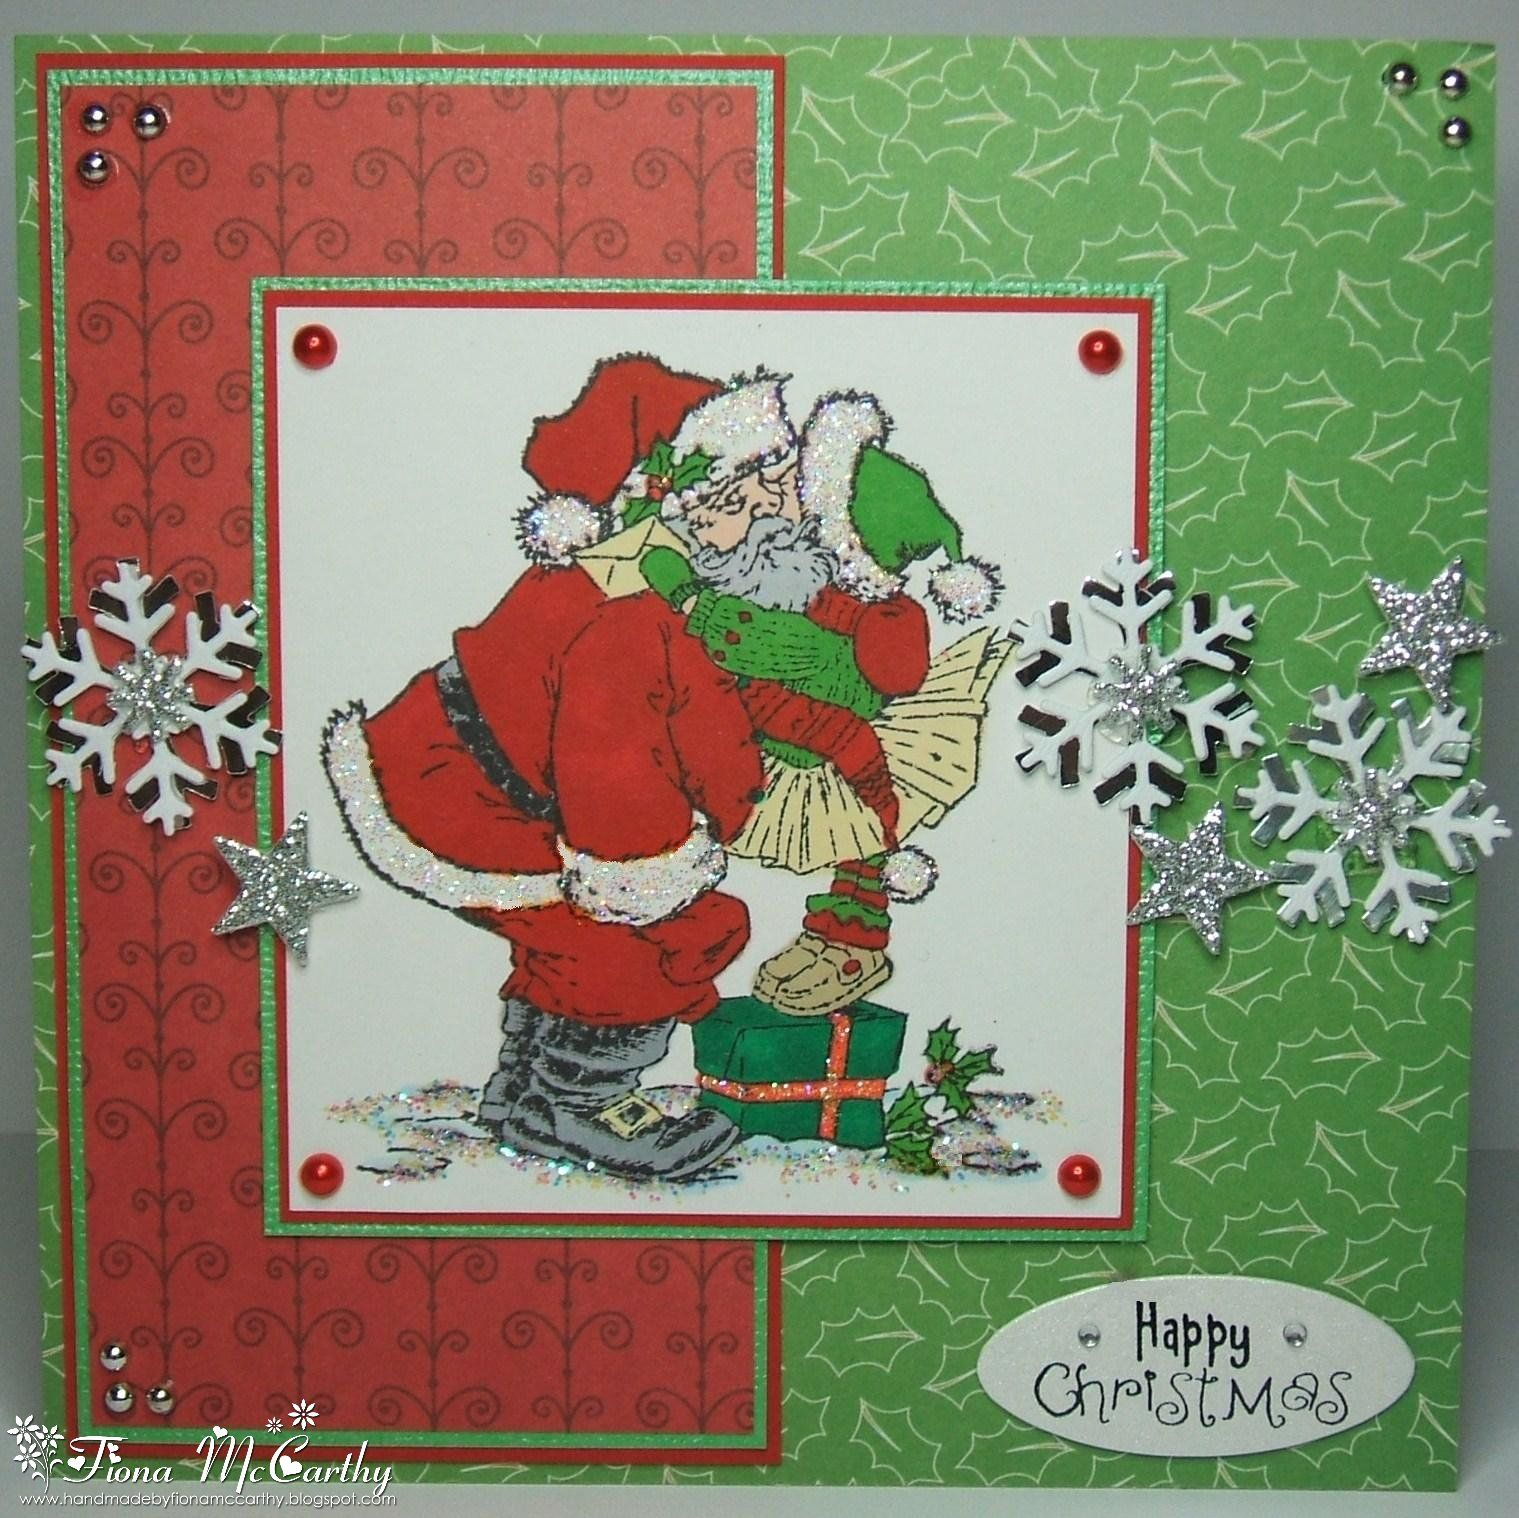 Awesome Qvc Card Making Ideas Part - 9: Pin By Netty Moo Moo On Christmas Cards 2 | Pinterest | Christmas Cards And  Cards